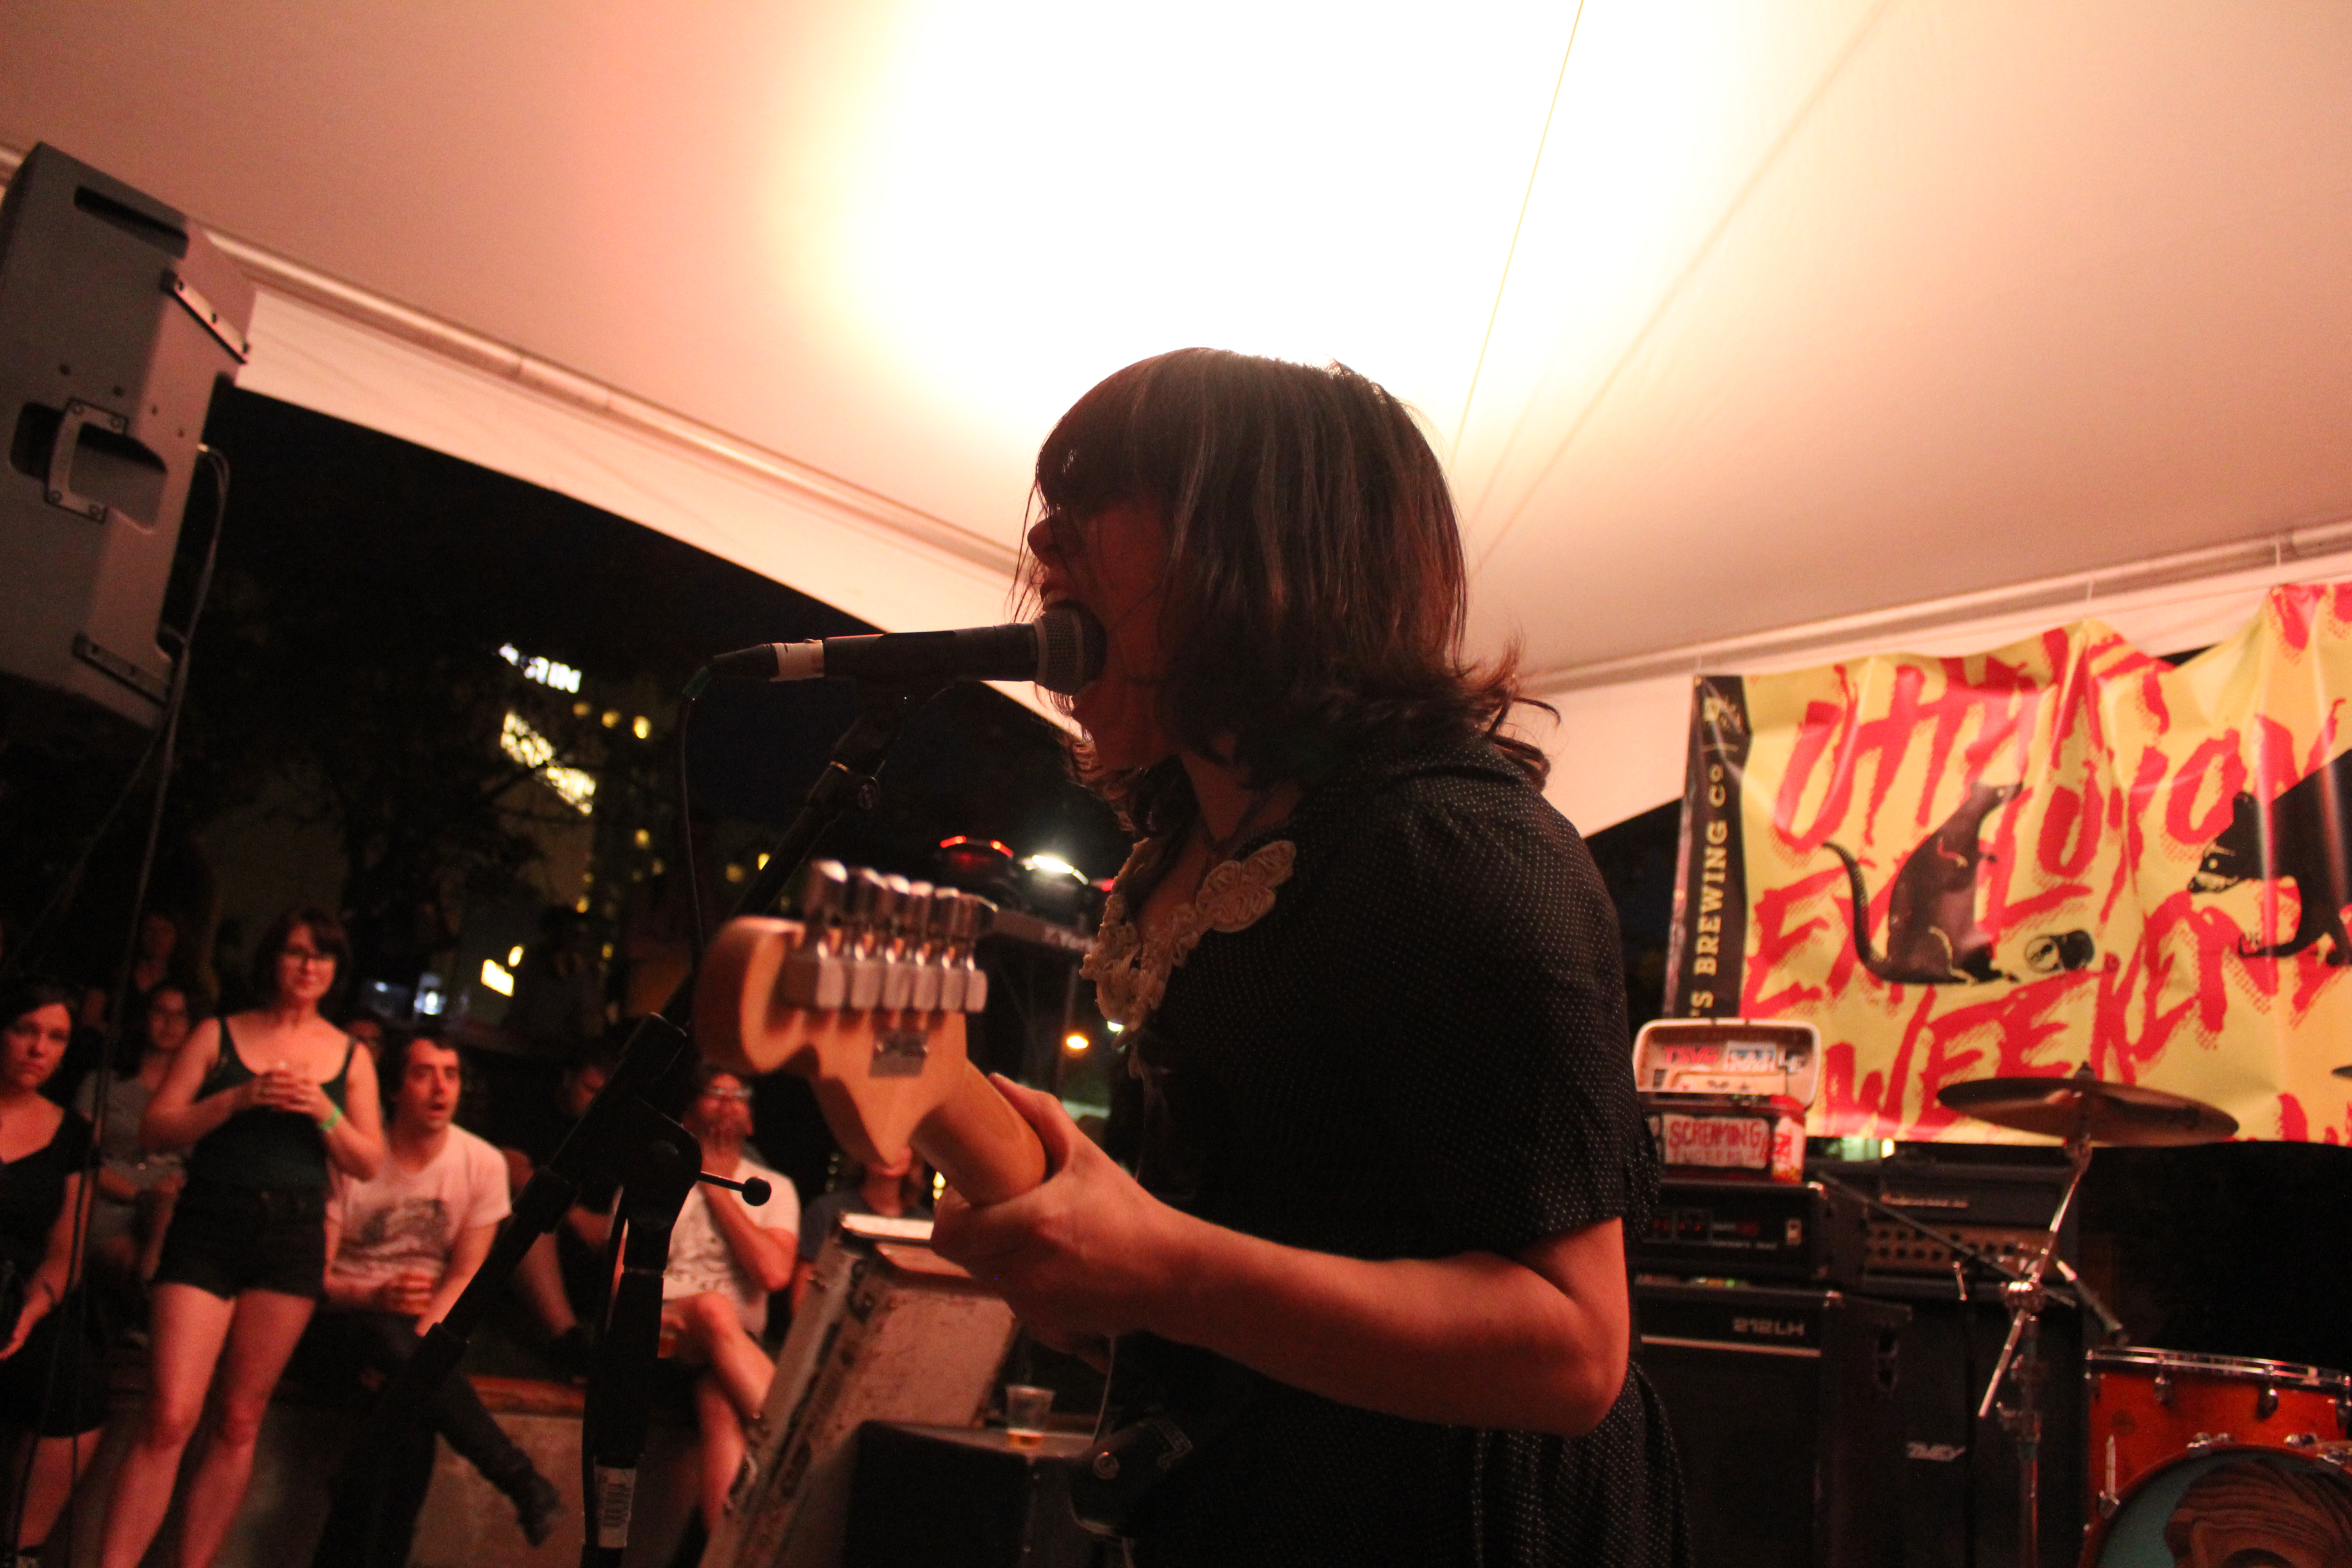 Screaming Females melting our faces at Ottawa Explosion Weekend 2016 at SAW Gallery. Photo: Eric Scharf